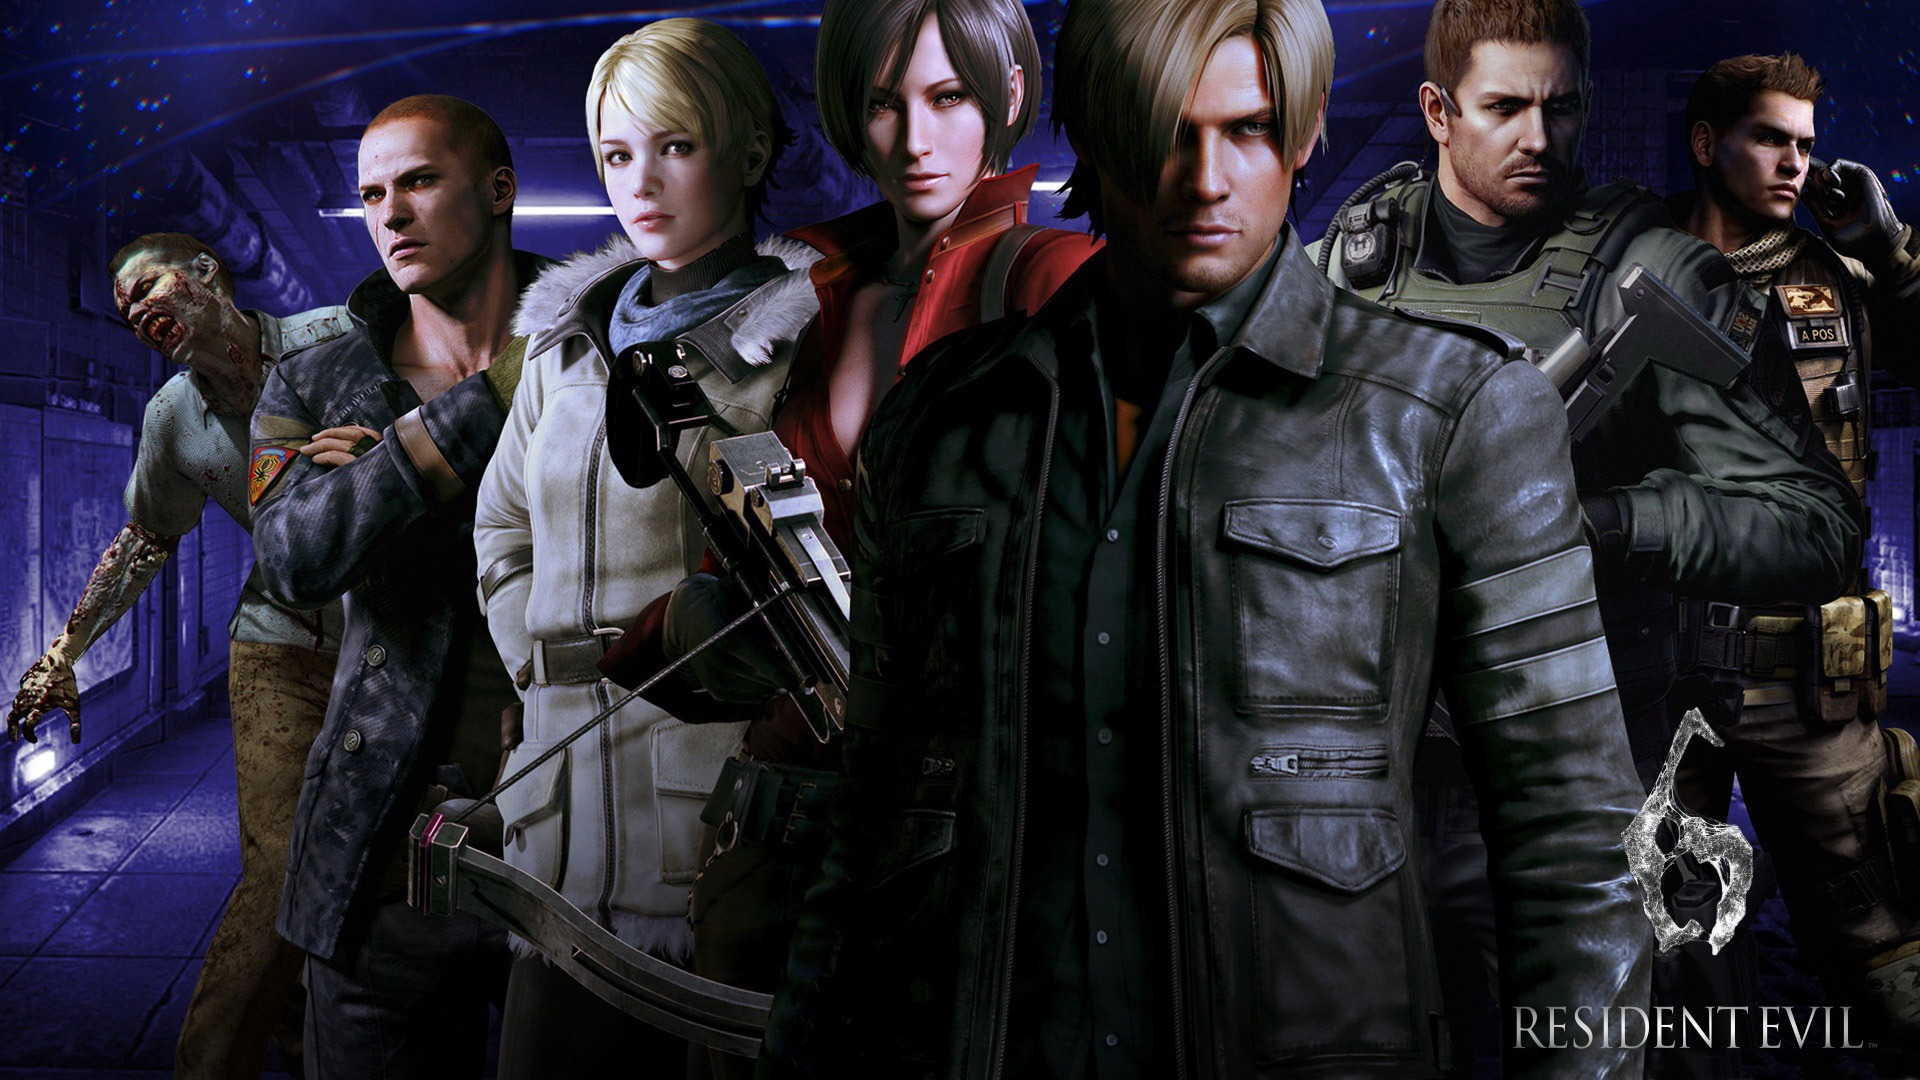 Resident Evil 6 Game HD Wallpaper 06 1920x1080